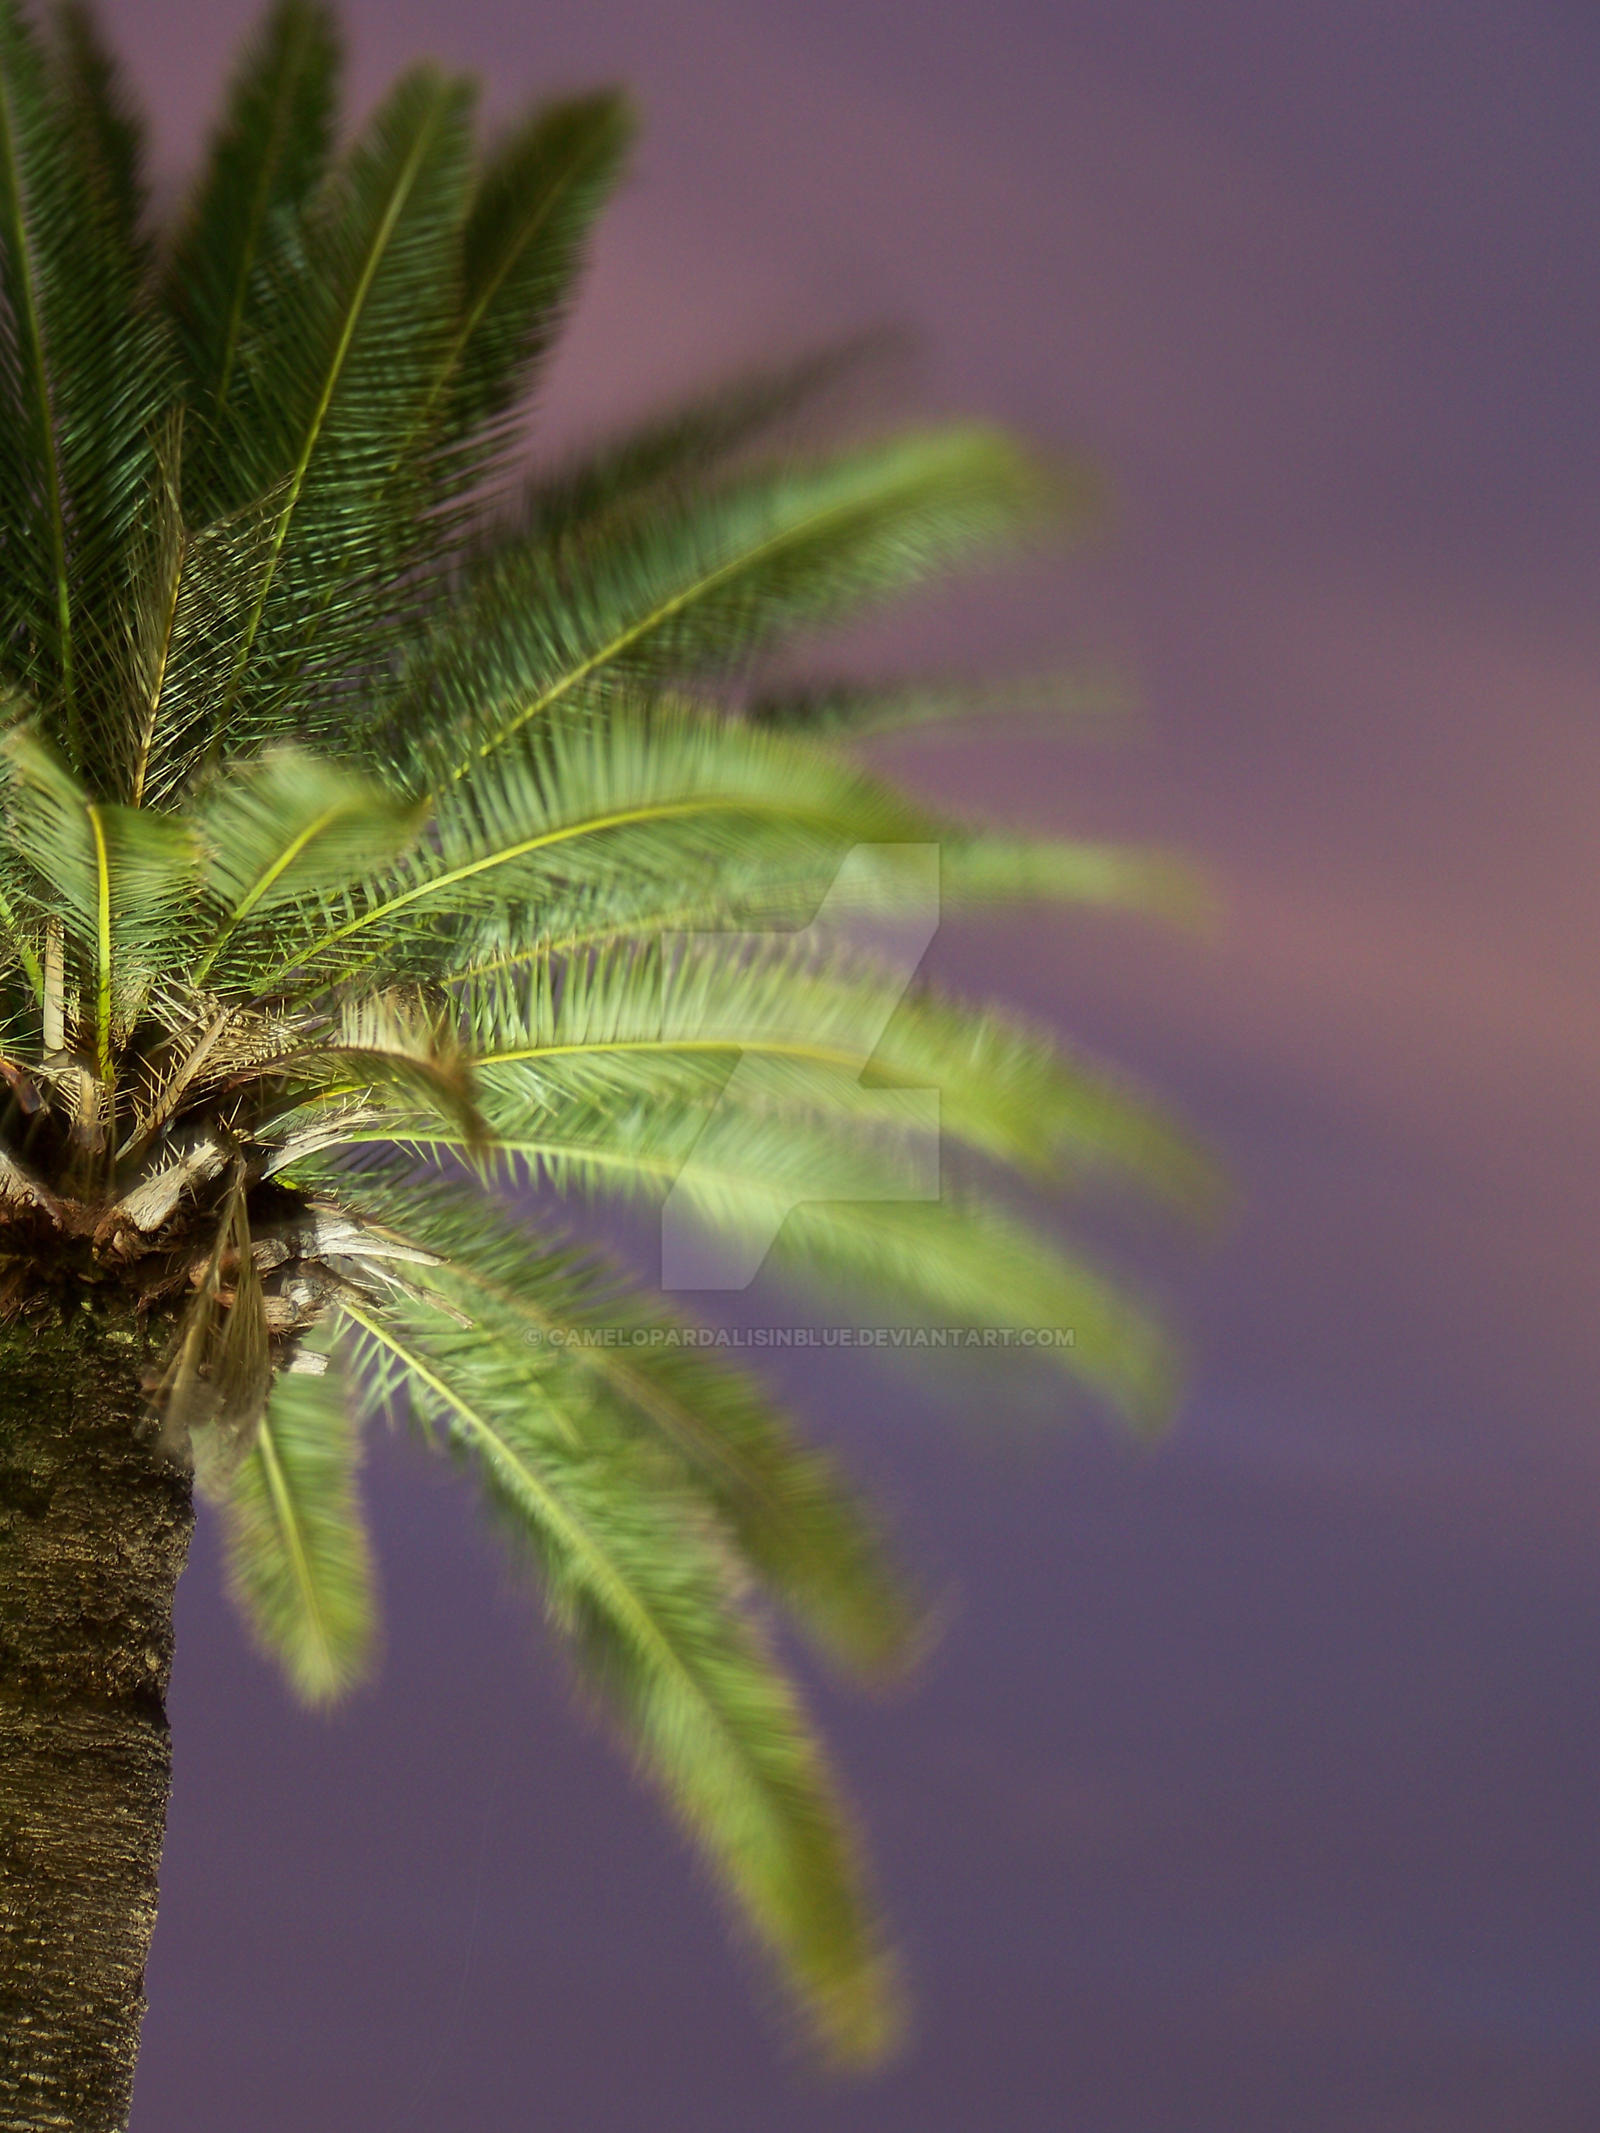 Evening Palm by camelopardalisinblue